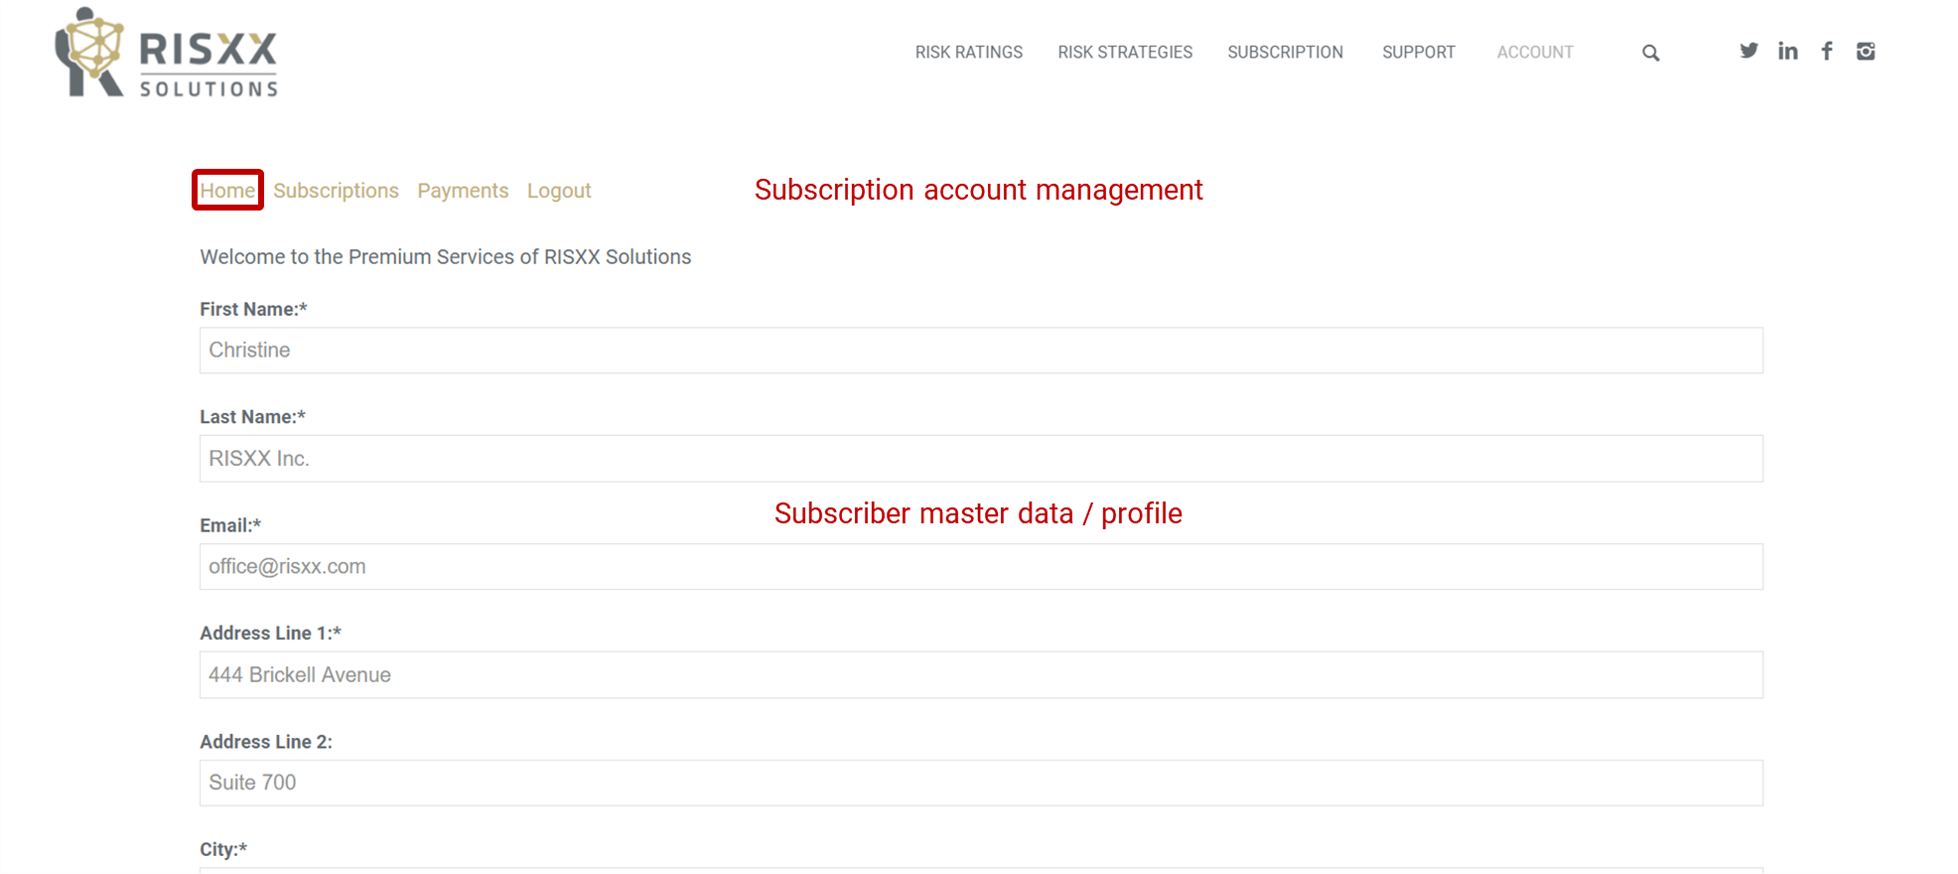 RISXX risk solutions – Subscription account management